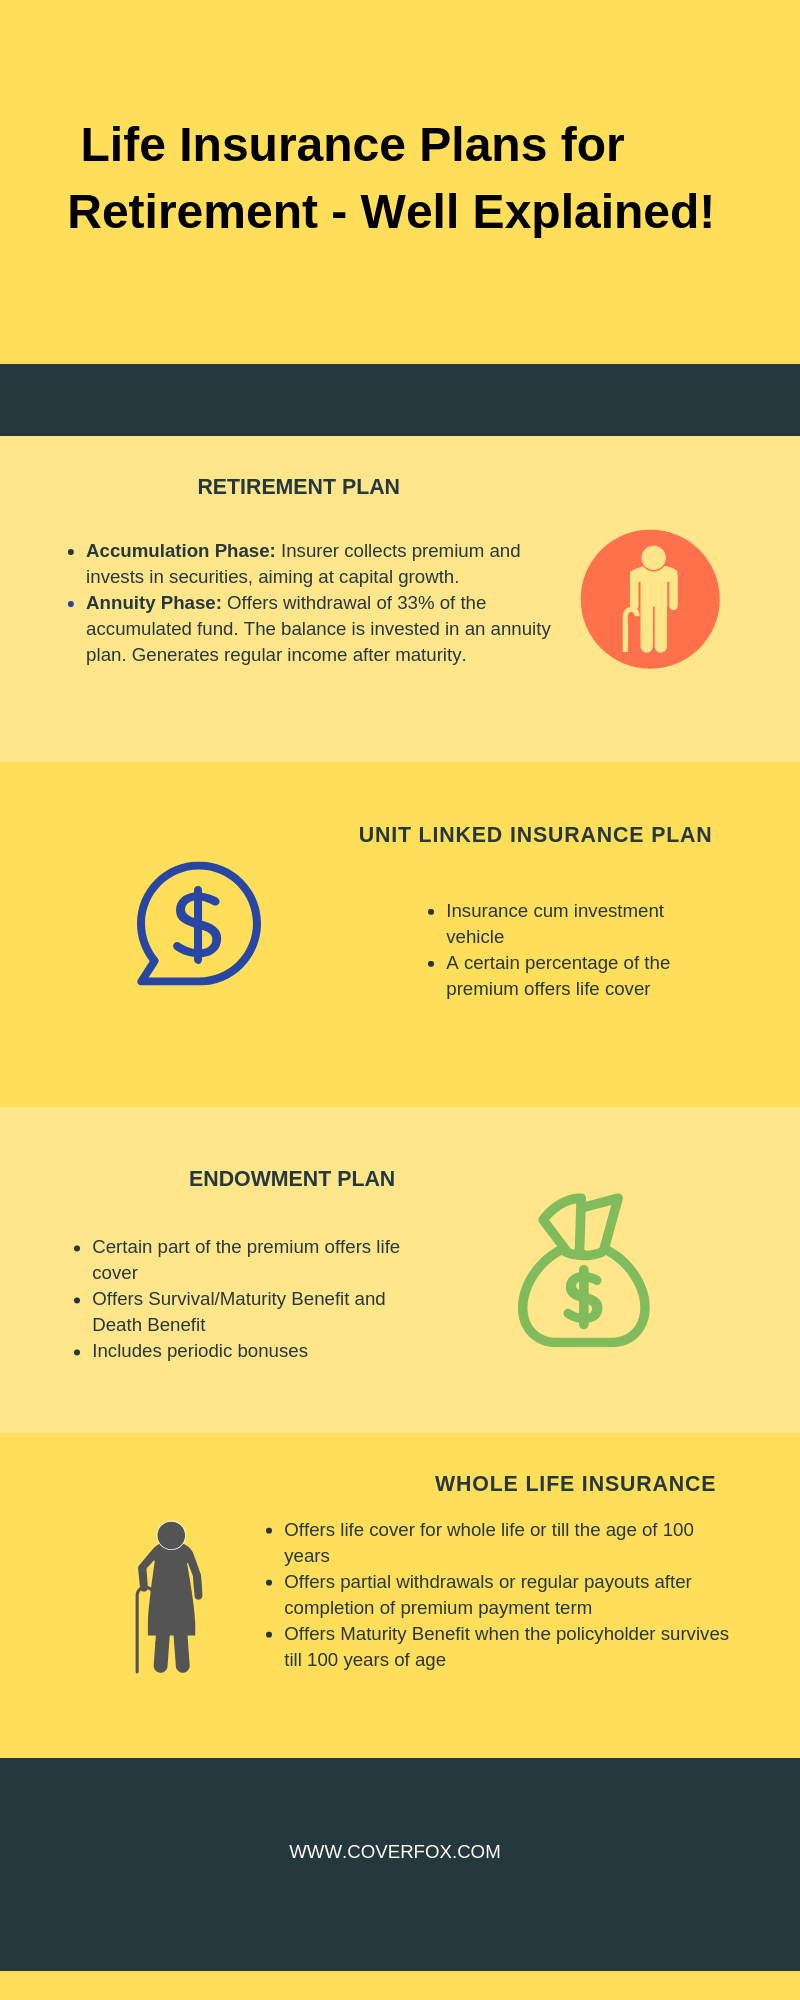 How To Use Life Insurance For Retirement Planning